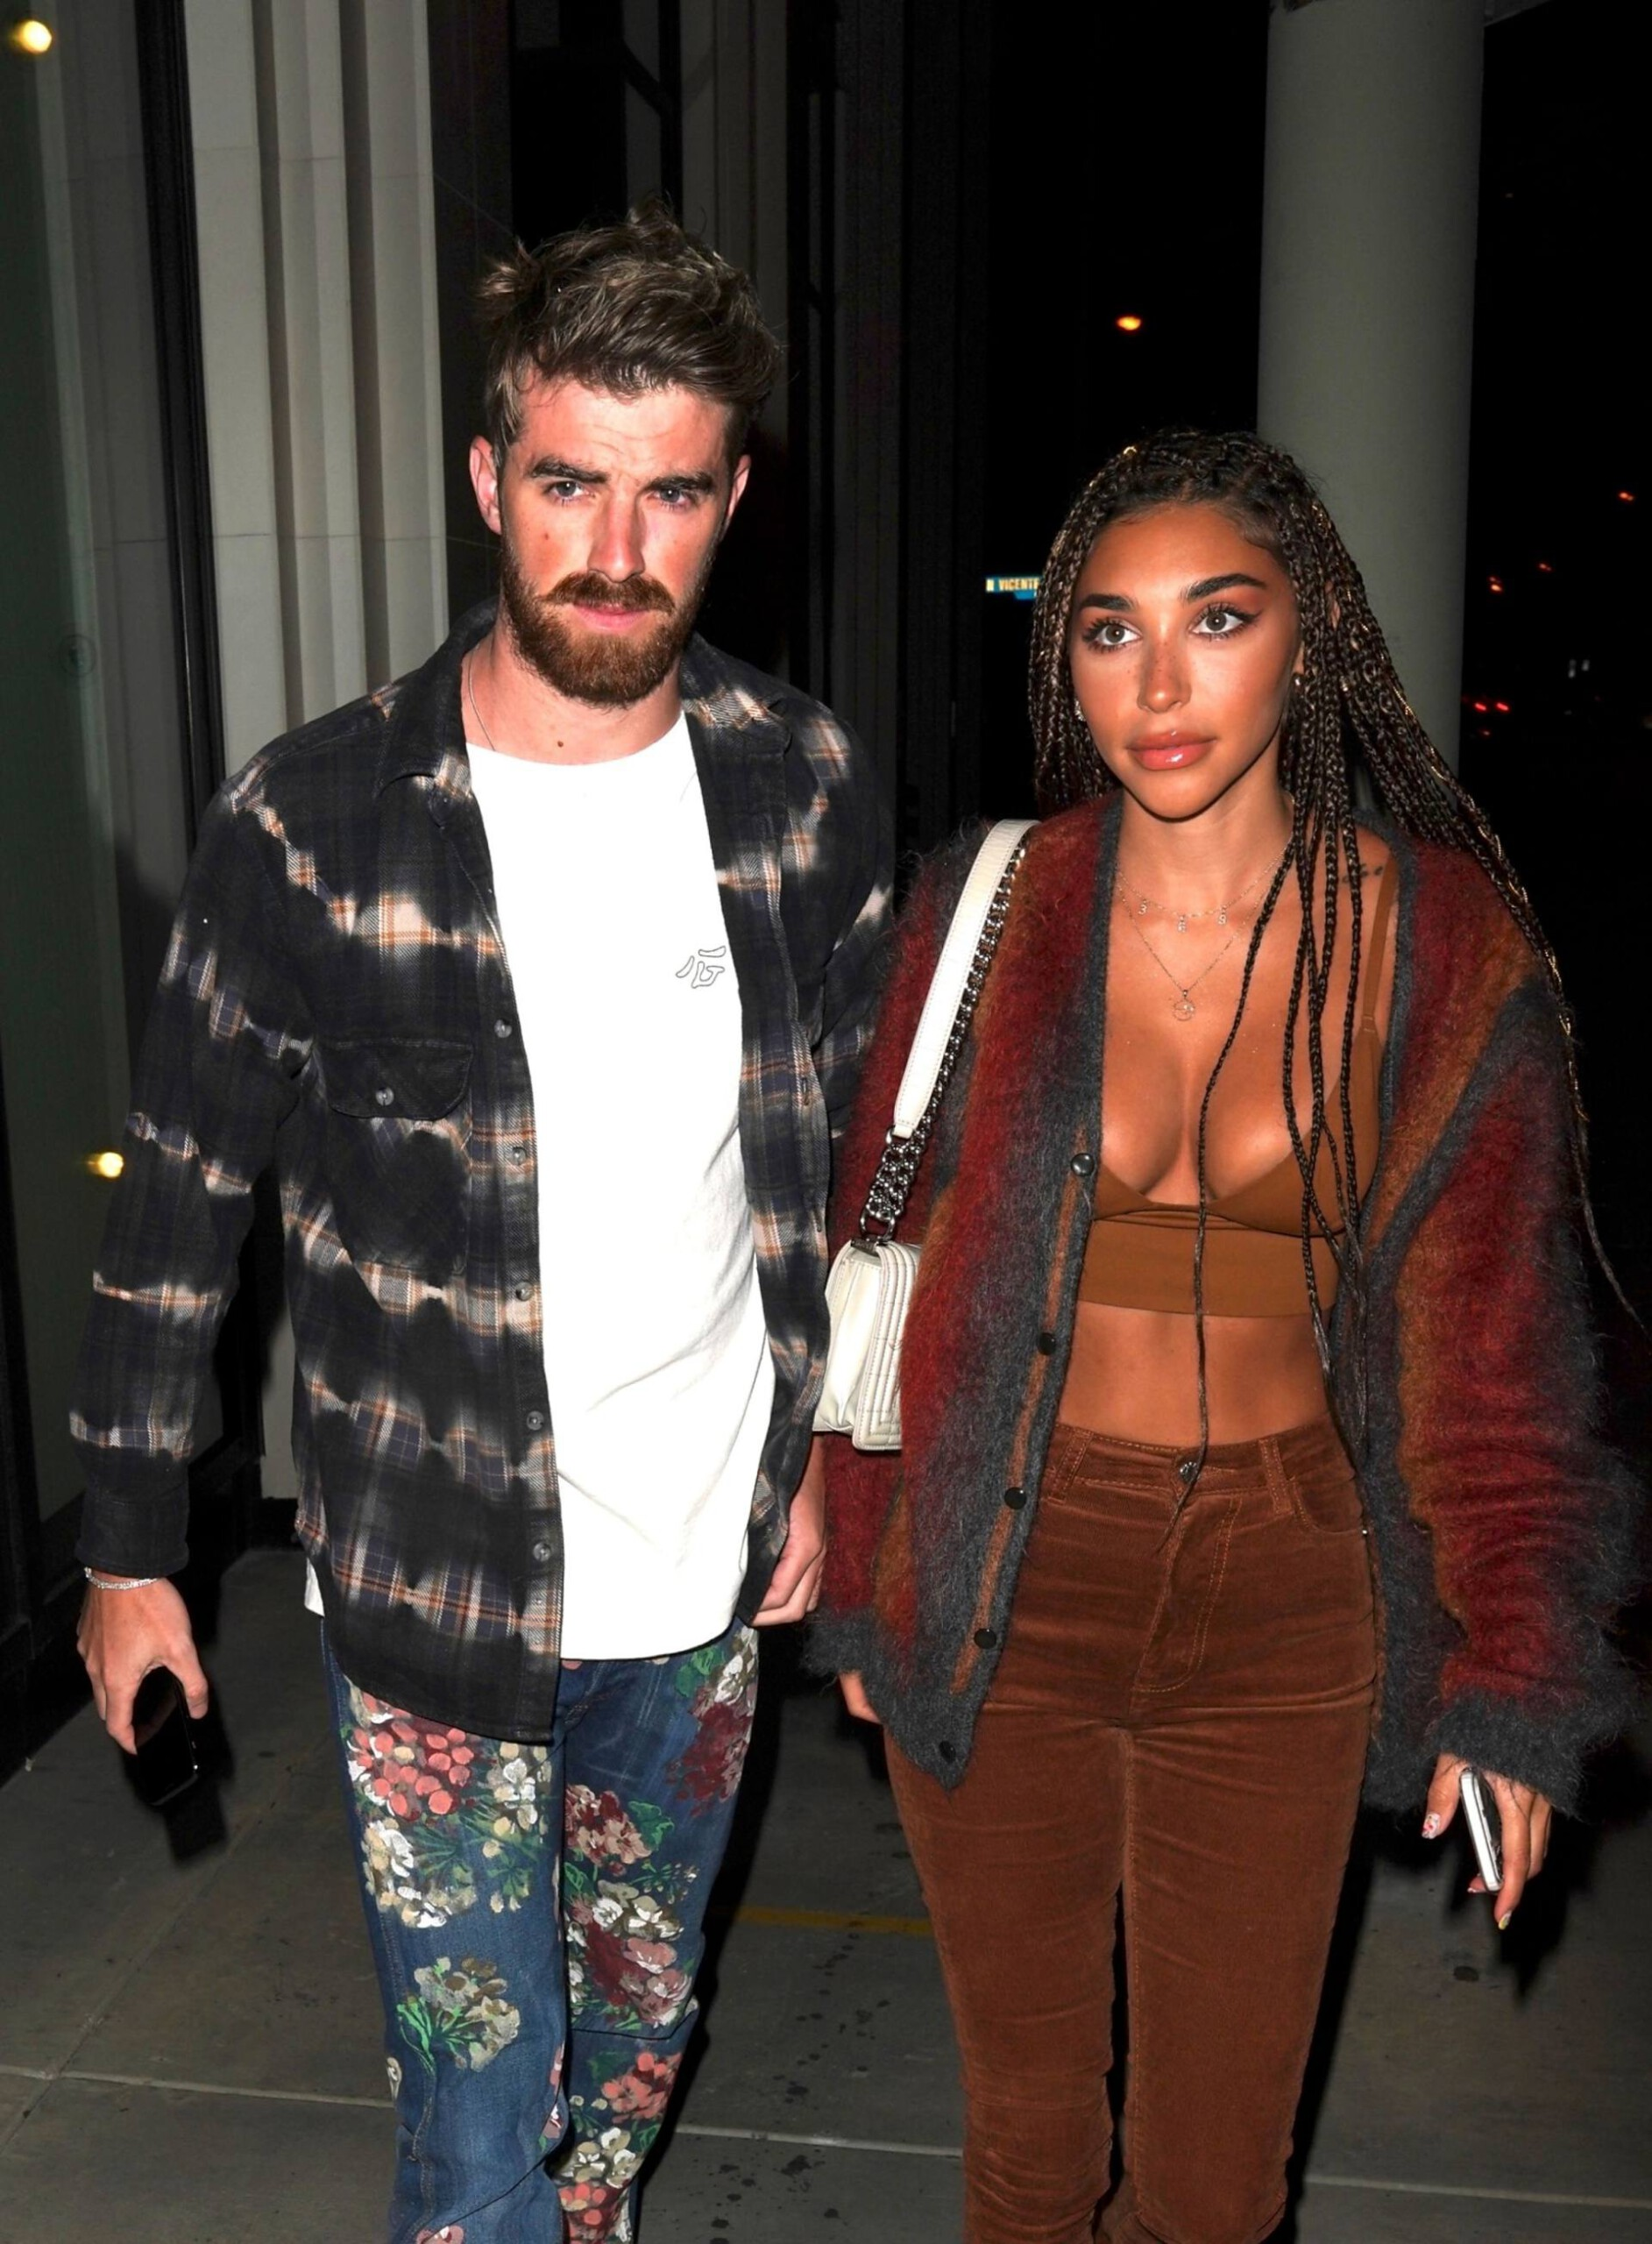 Chantel Jeffries – Sexy Boobs In Big Cleavage At Catch Restaurant In West Hollywood 0013